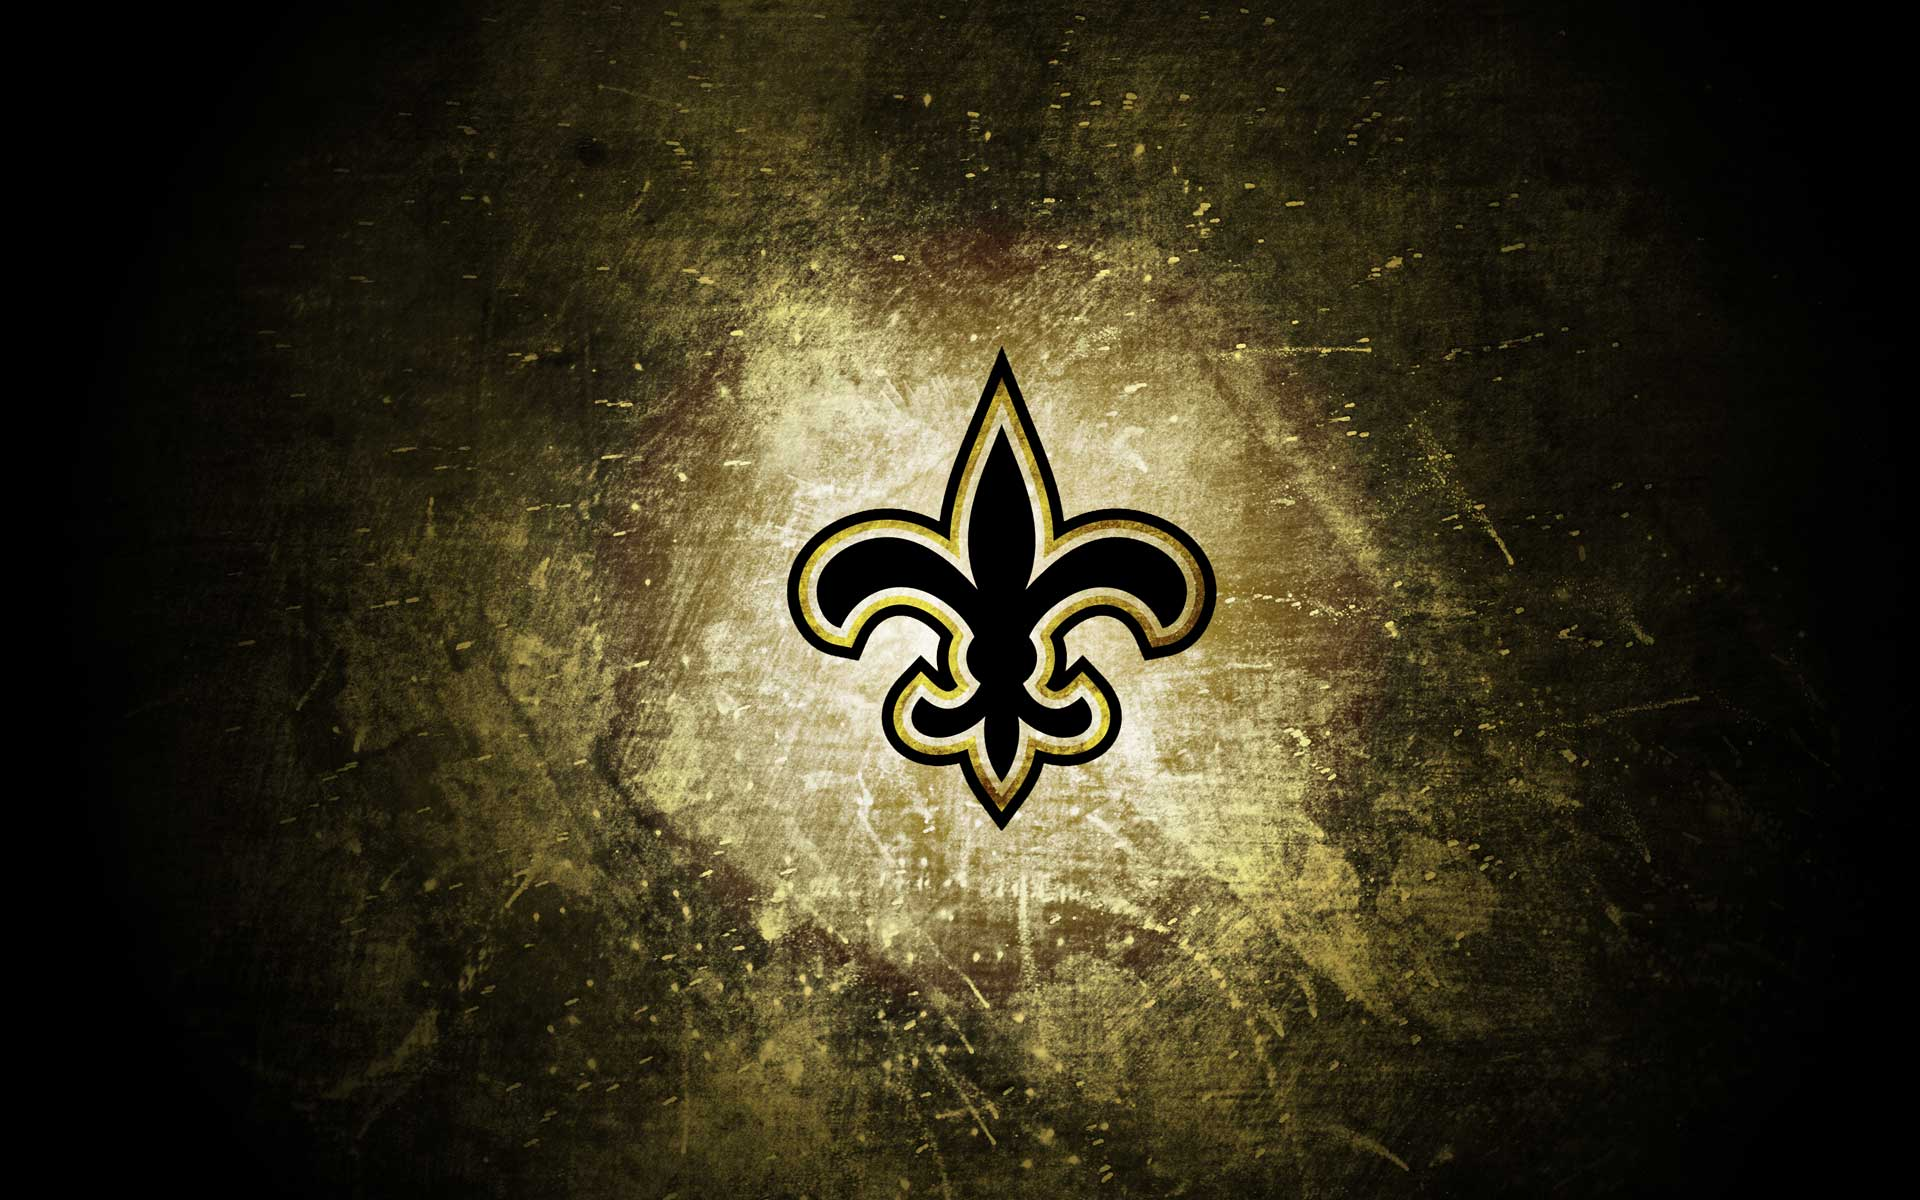 Nfl saints wallpaper